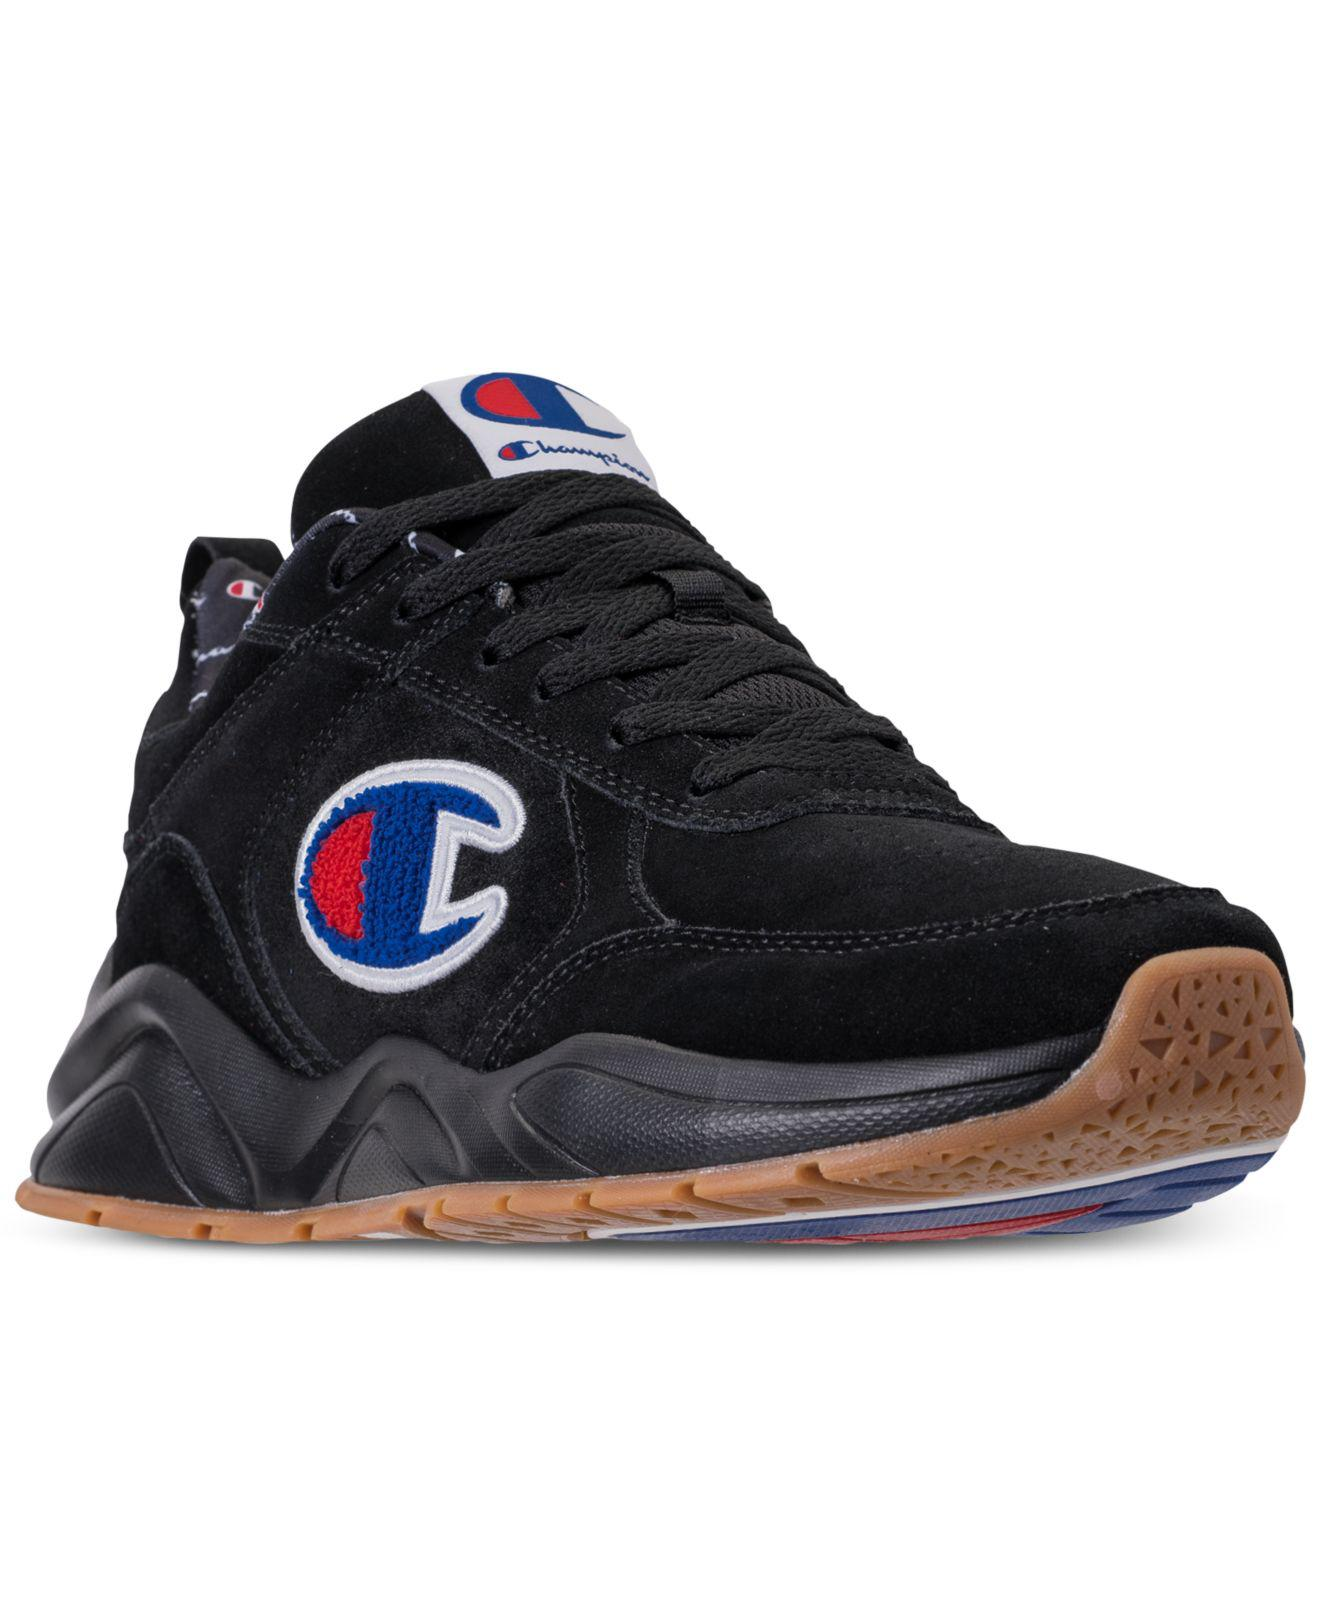 3f84a1b6e96 Lyst - Champion 93eighteen Suede Chenille Athletic Training Sneakers ...